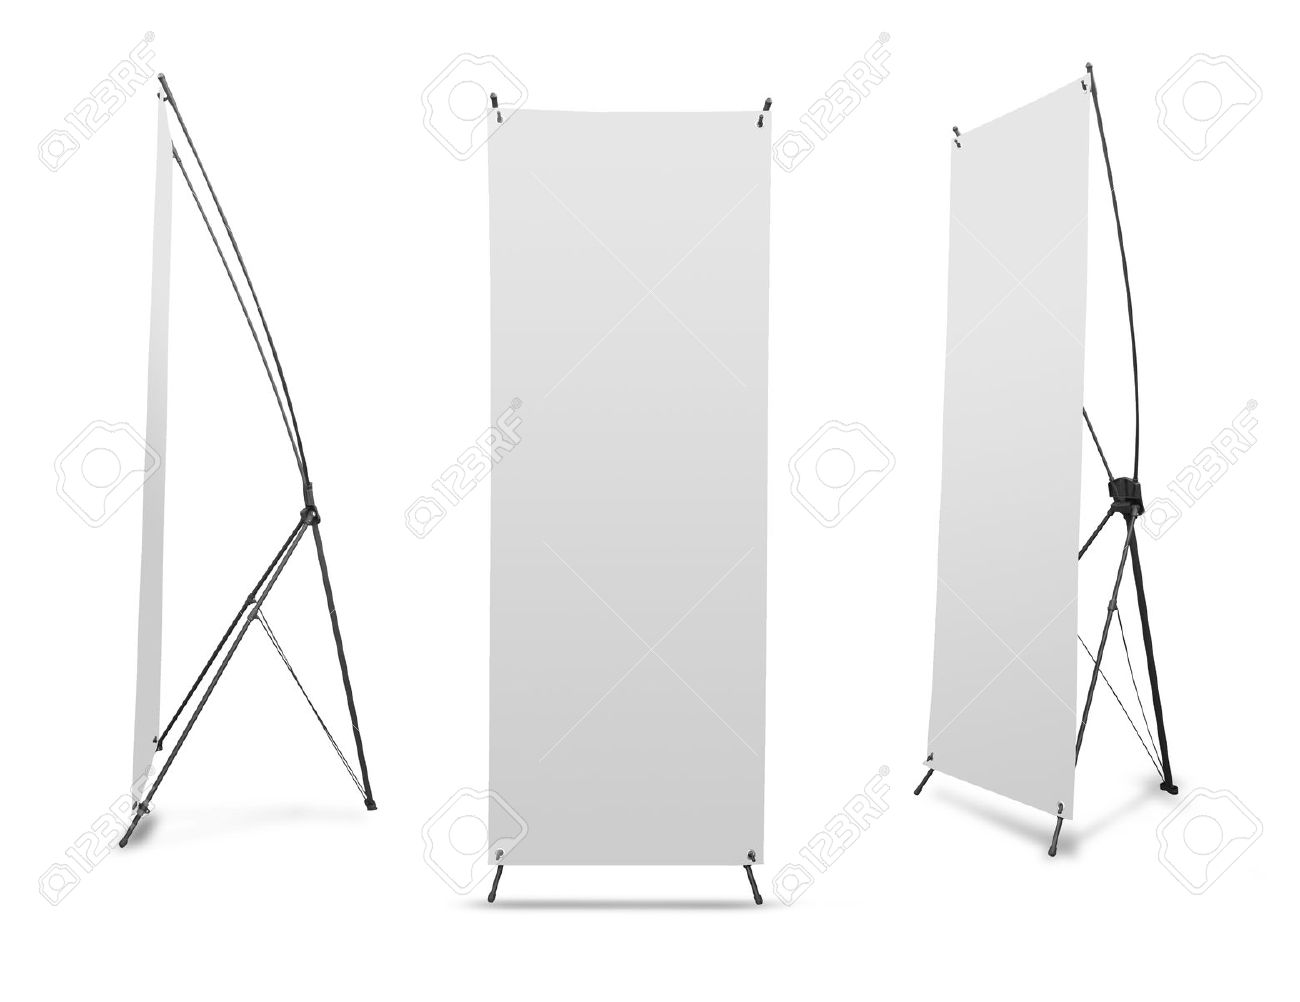 x banner images & stock pictures royalty free x banner photos and